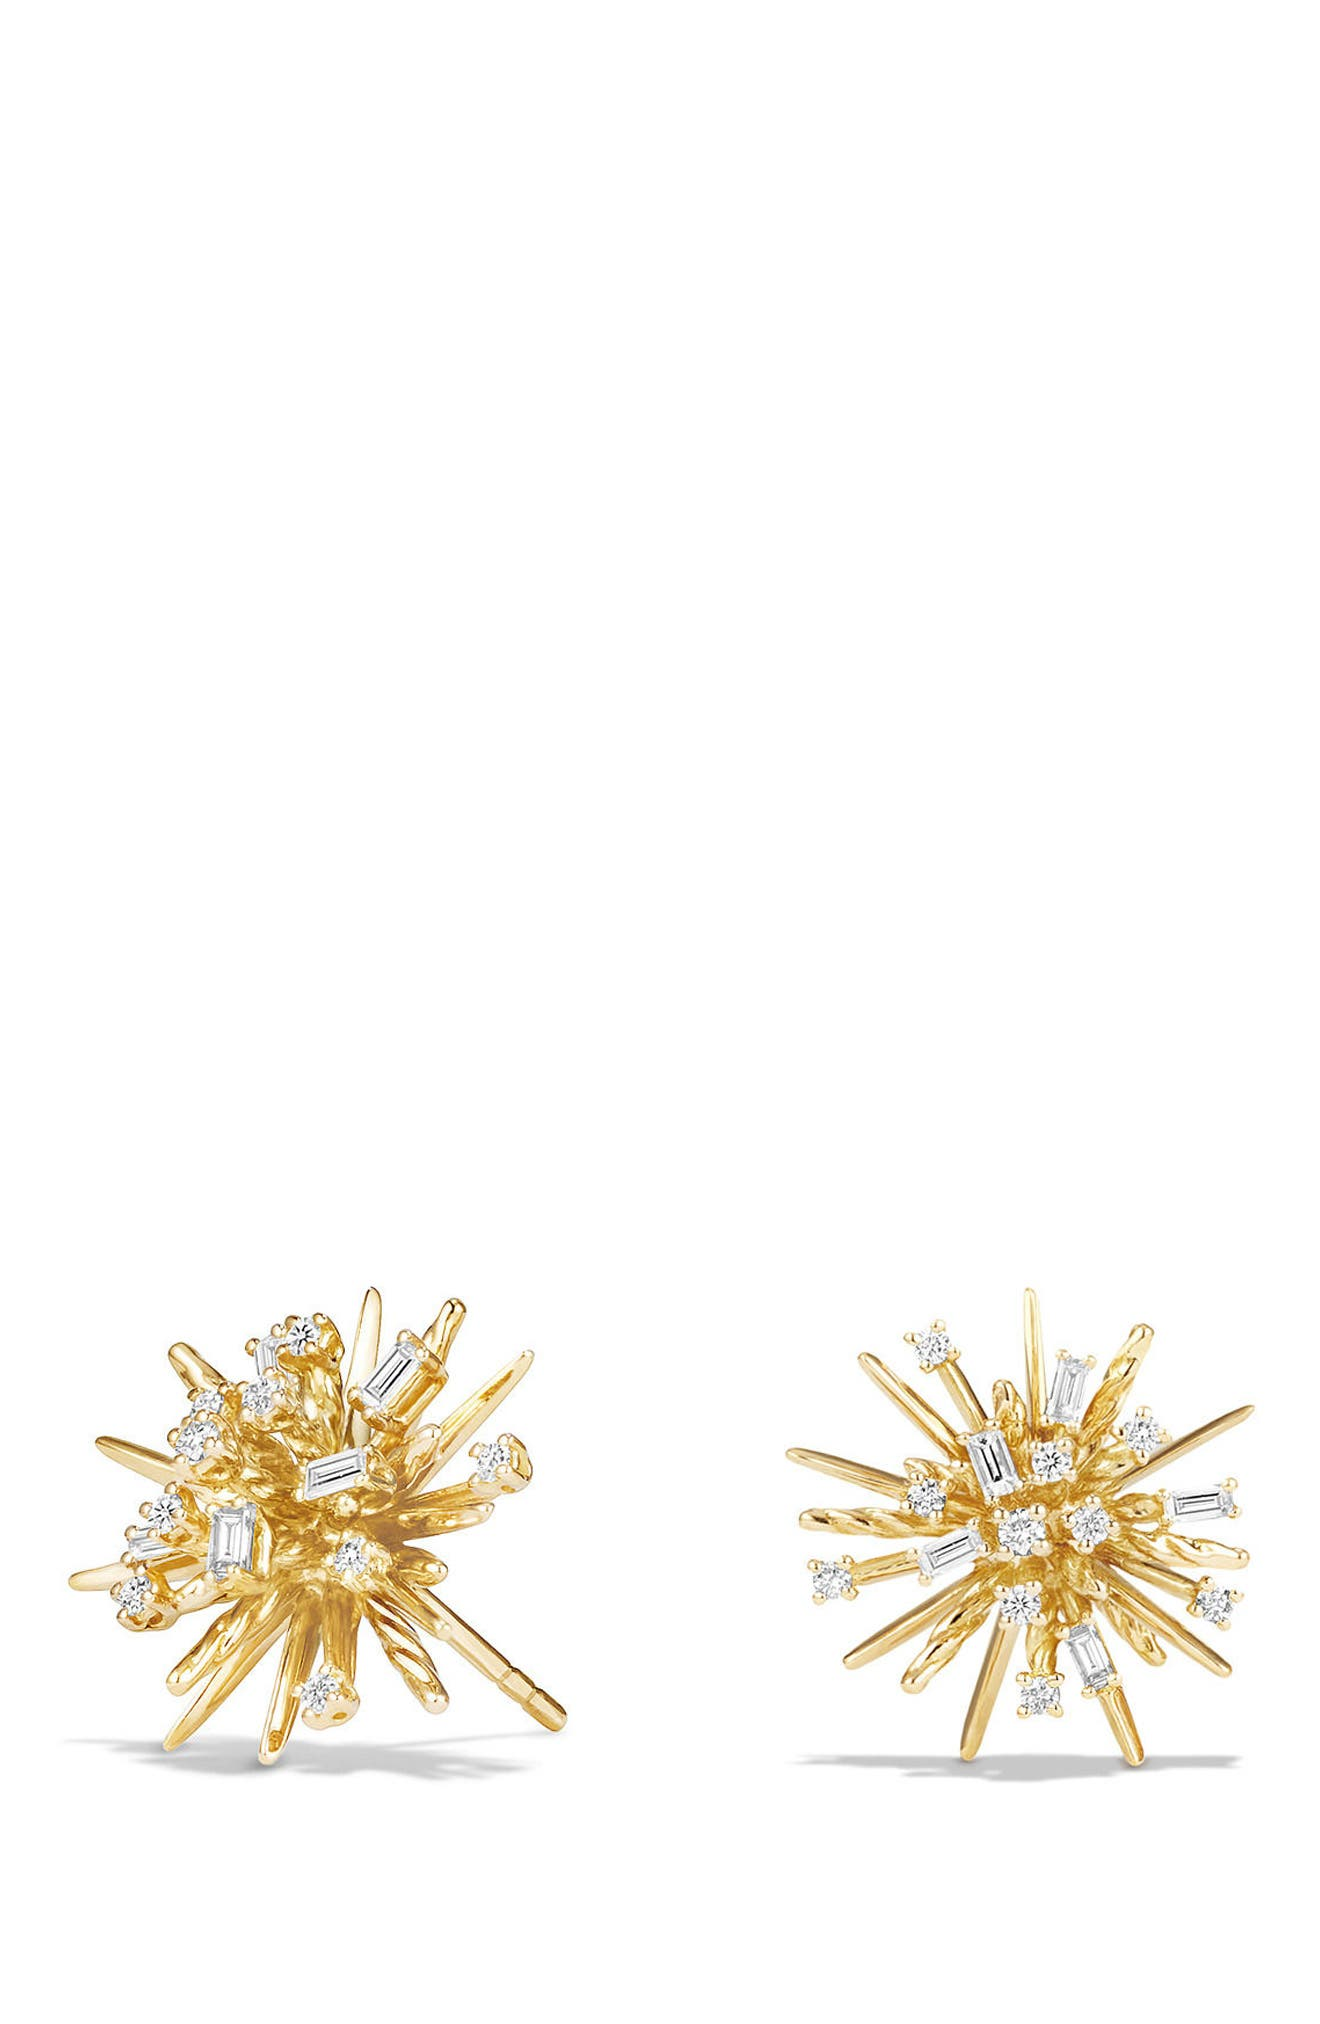 Supernova Stud Earrings with Diamonds in 18K Gold,                             Main thumbnail 1, color,                             YELLOW GOLD